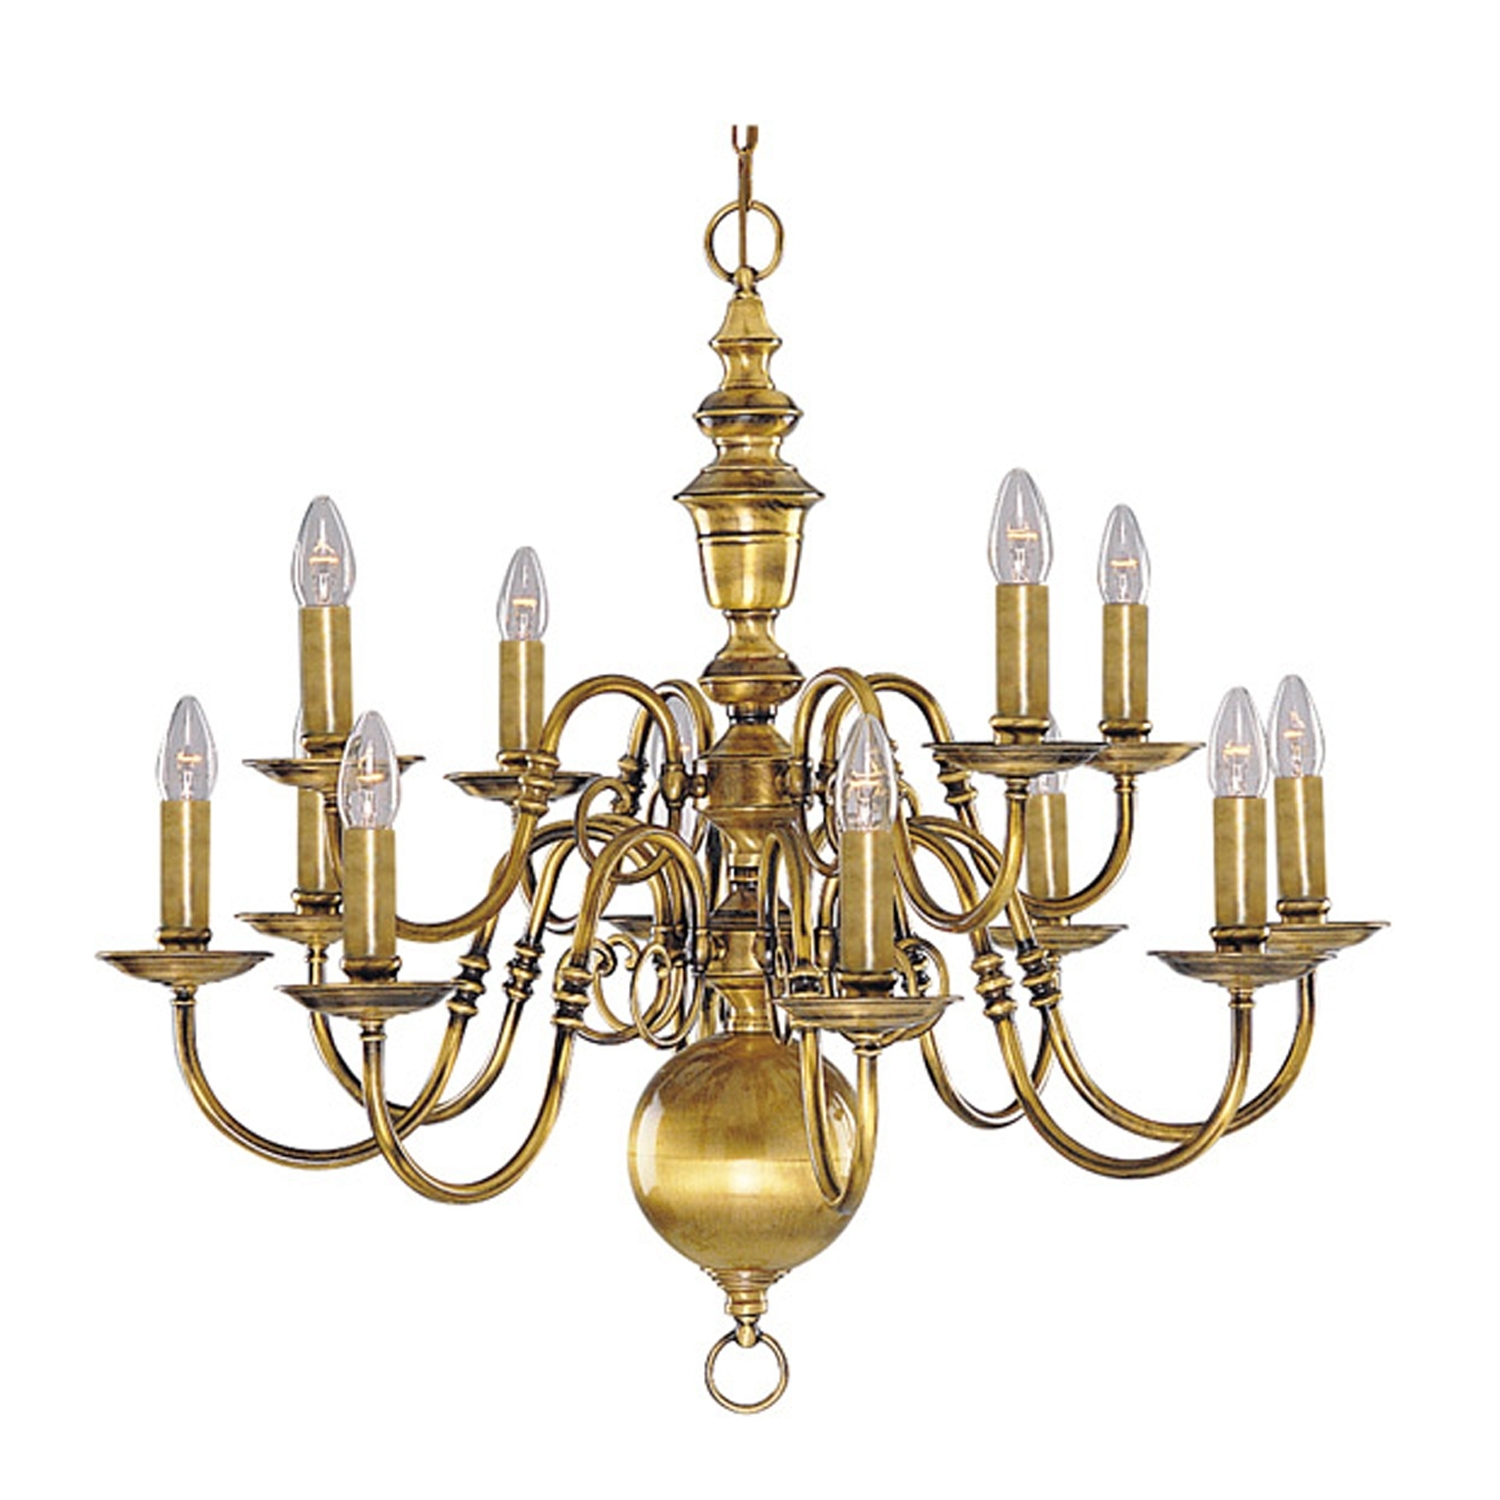 Old Brass Chandeliers In Current Chandeliers Design : Wonderful Interesting Antique Brass Chandelier (View 6 of 15)